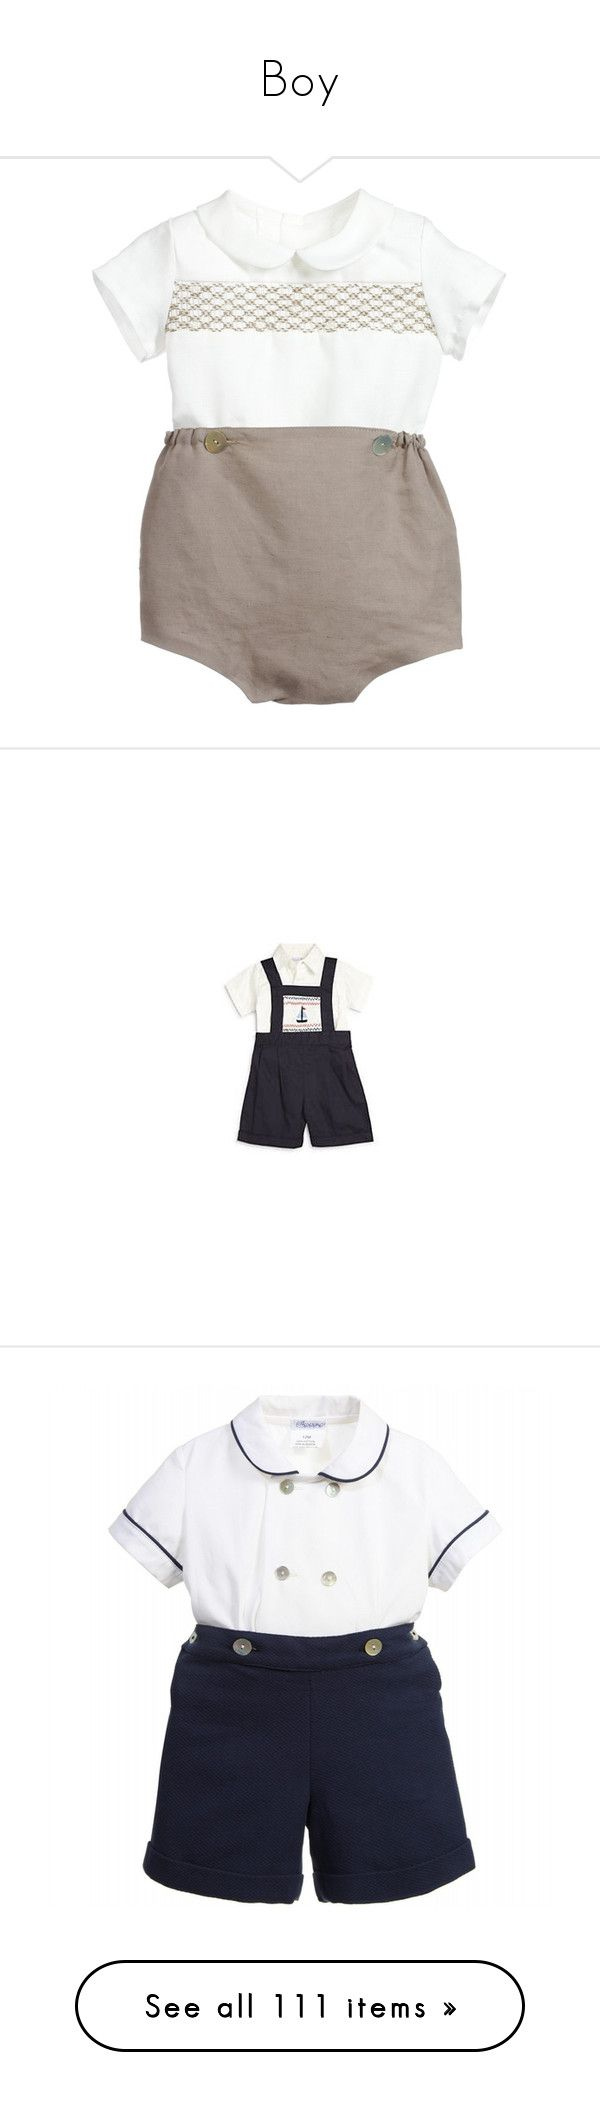 """""""Boy"""" by stylesroyals ❤ liked on Polyvore featuring tops, navy top, short sleeve polo shirts, blue polo shirts, striped top, navy blue polo shirts, jumpsuits, tailored jumpsuit, blue jumpsuit and strappy jumpsu"""